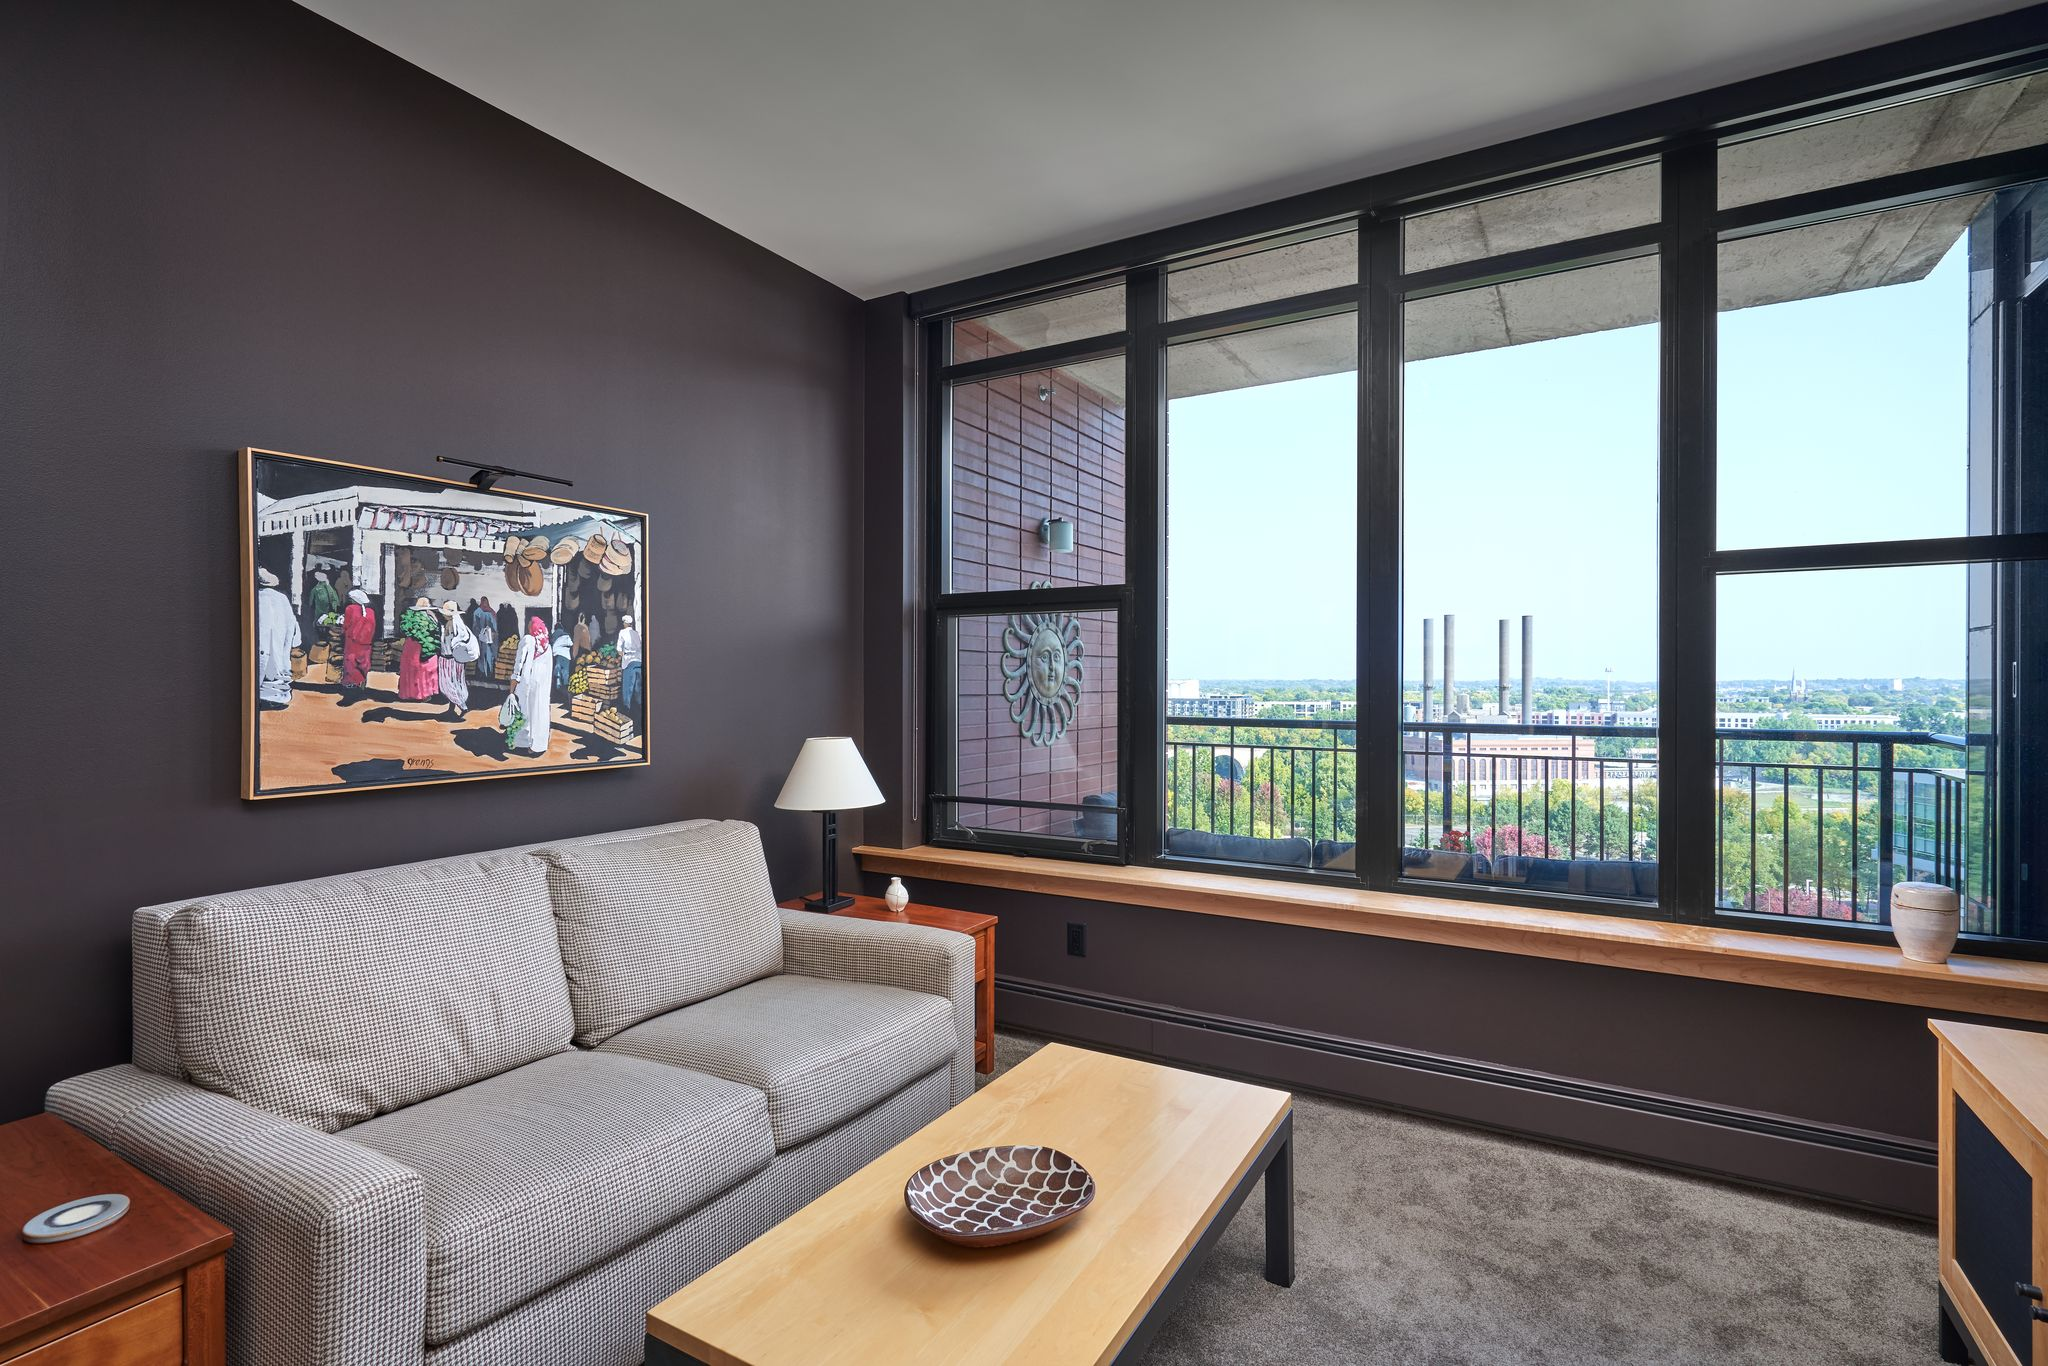 What to Know Before Remodeling Your Condo